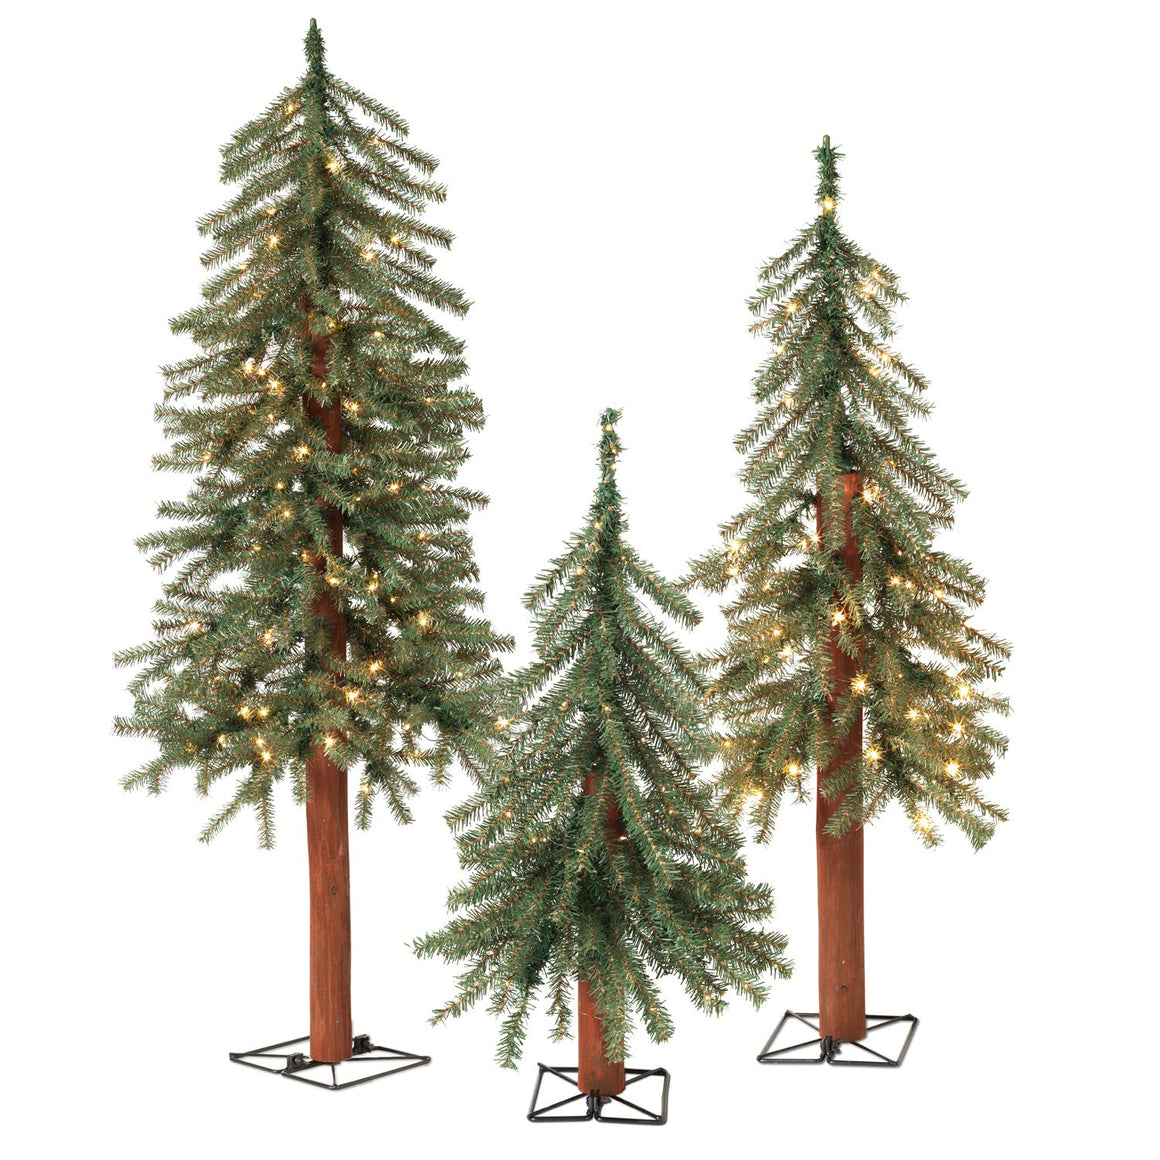 TenWaterloo Set of 3 Lighted Christmas Pine Trees with Wood Trunks- 2 Foot, 3 Foot and 4 Foot High Artificial Alpine Trees - Battery Operated